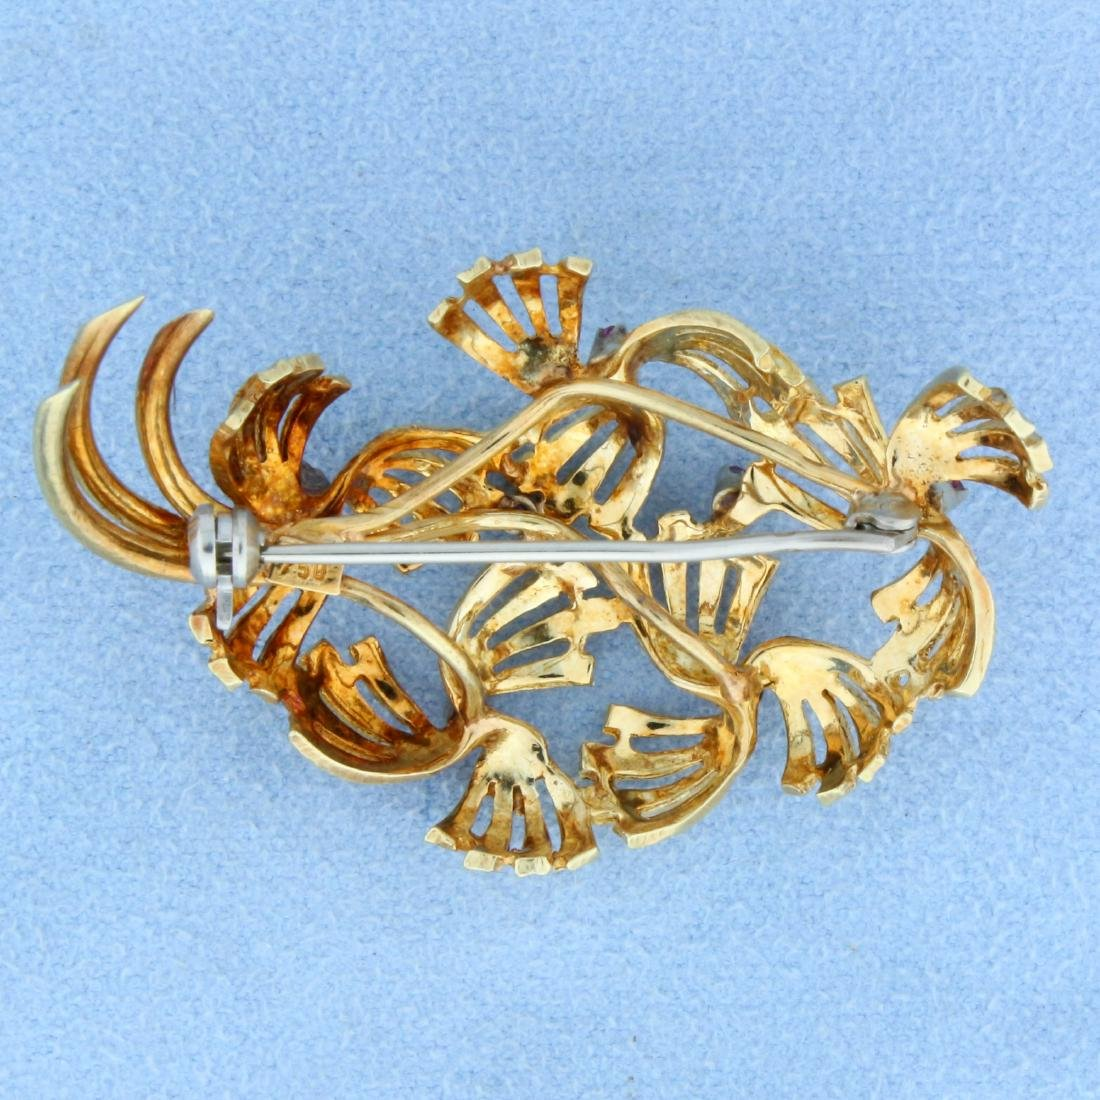 Antique 18k Gold Ruby Pin - 2